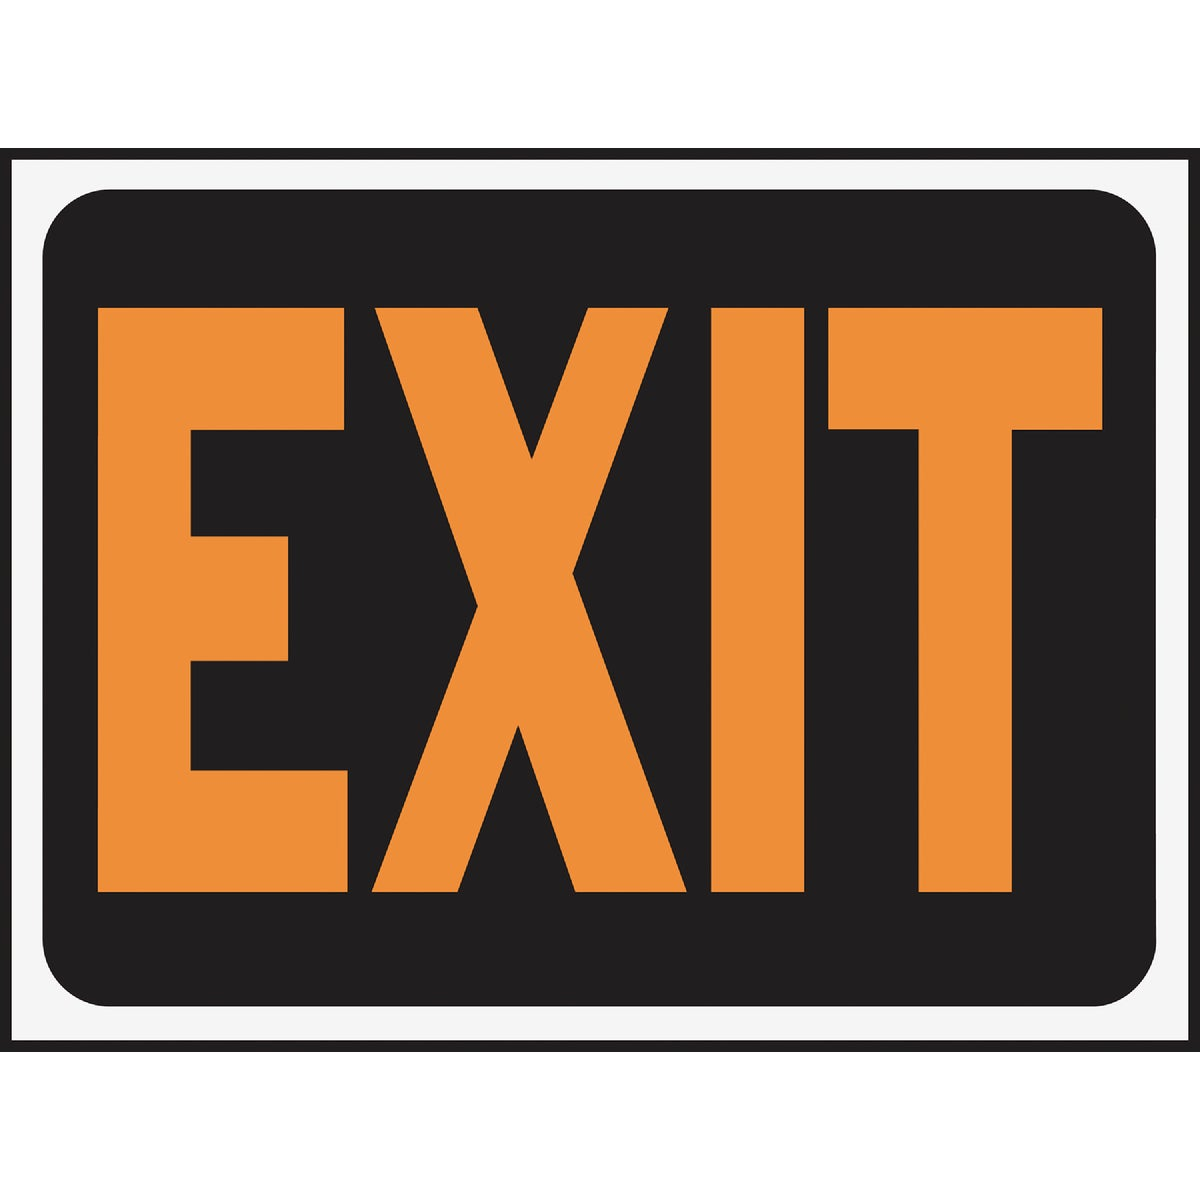 9X12 EXIT SIGN - 3003 by Hy Ko Prods Co